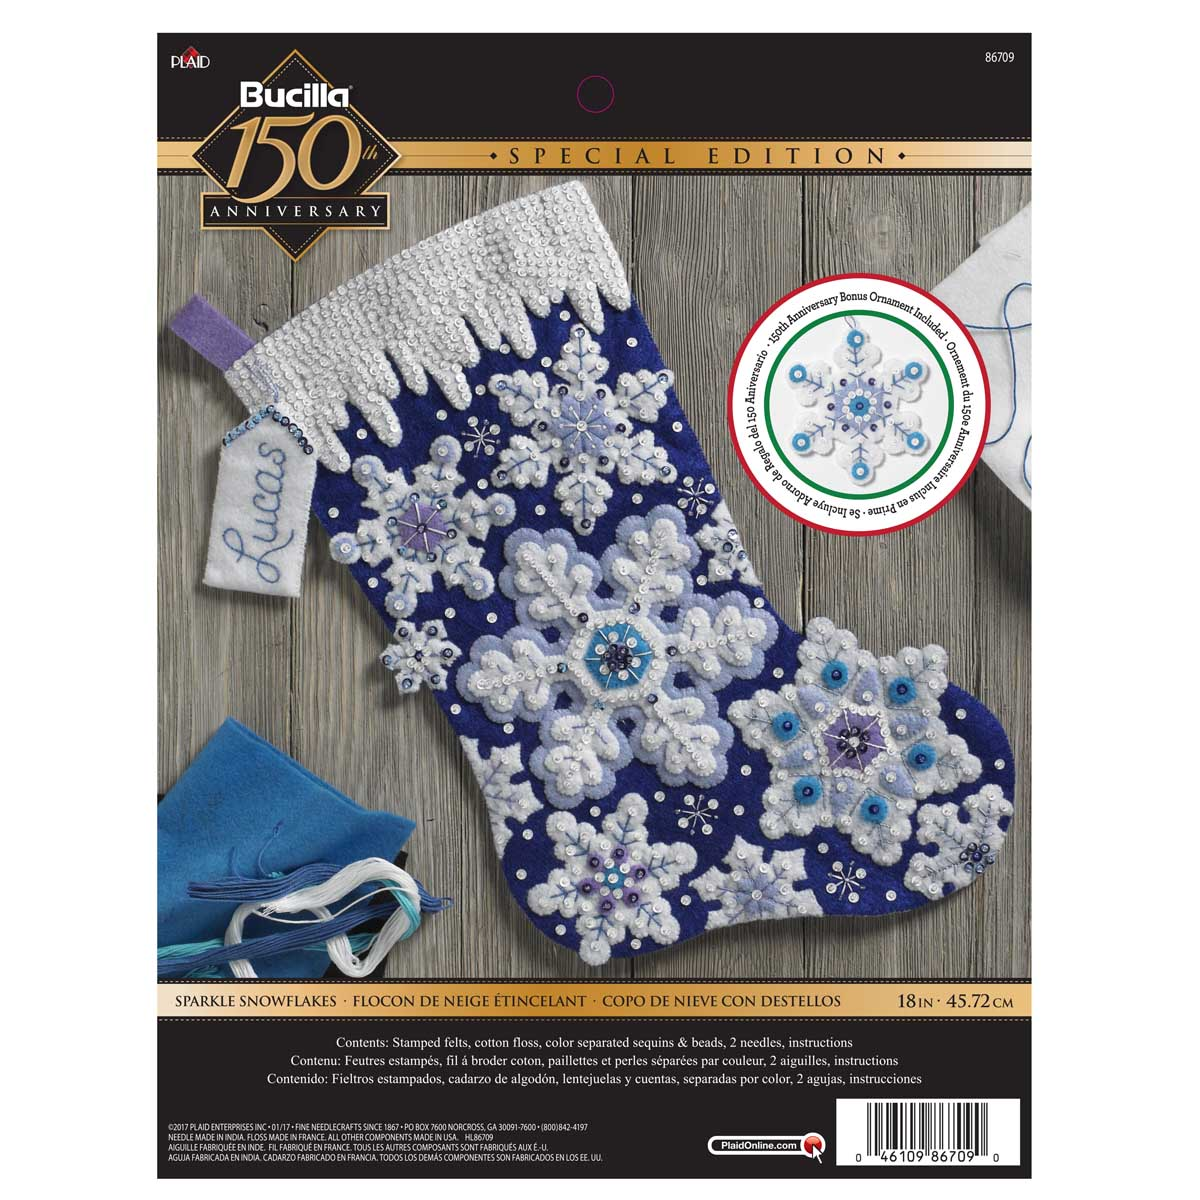 Bucilla ® Seasonal - Felt - Stocking Kits - Sparkle Snowflakes